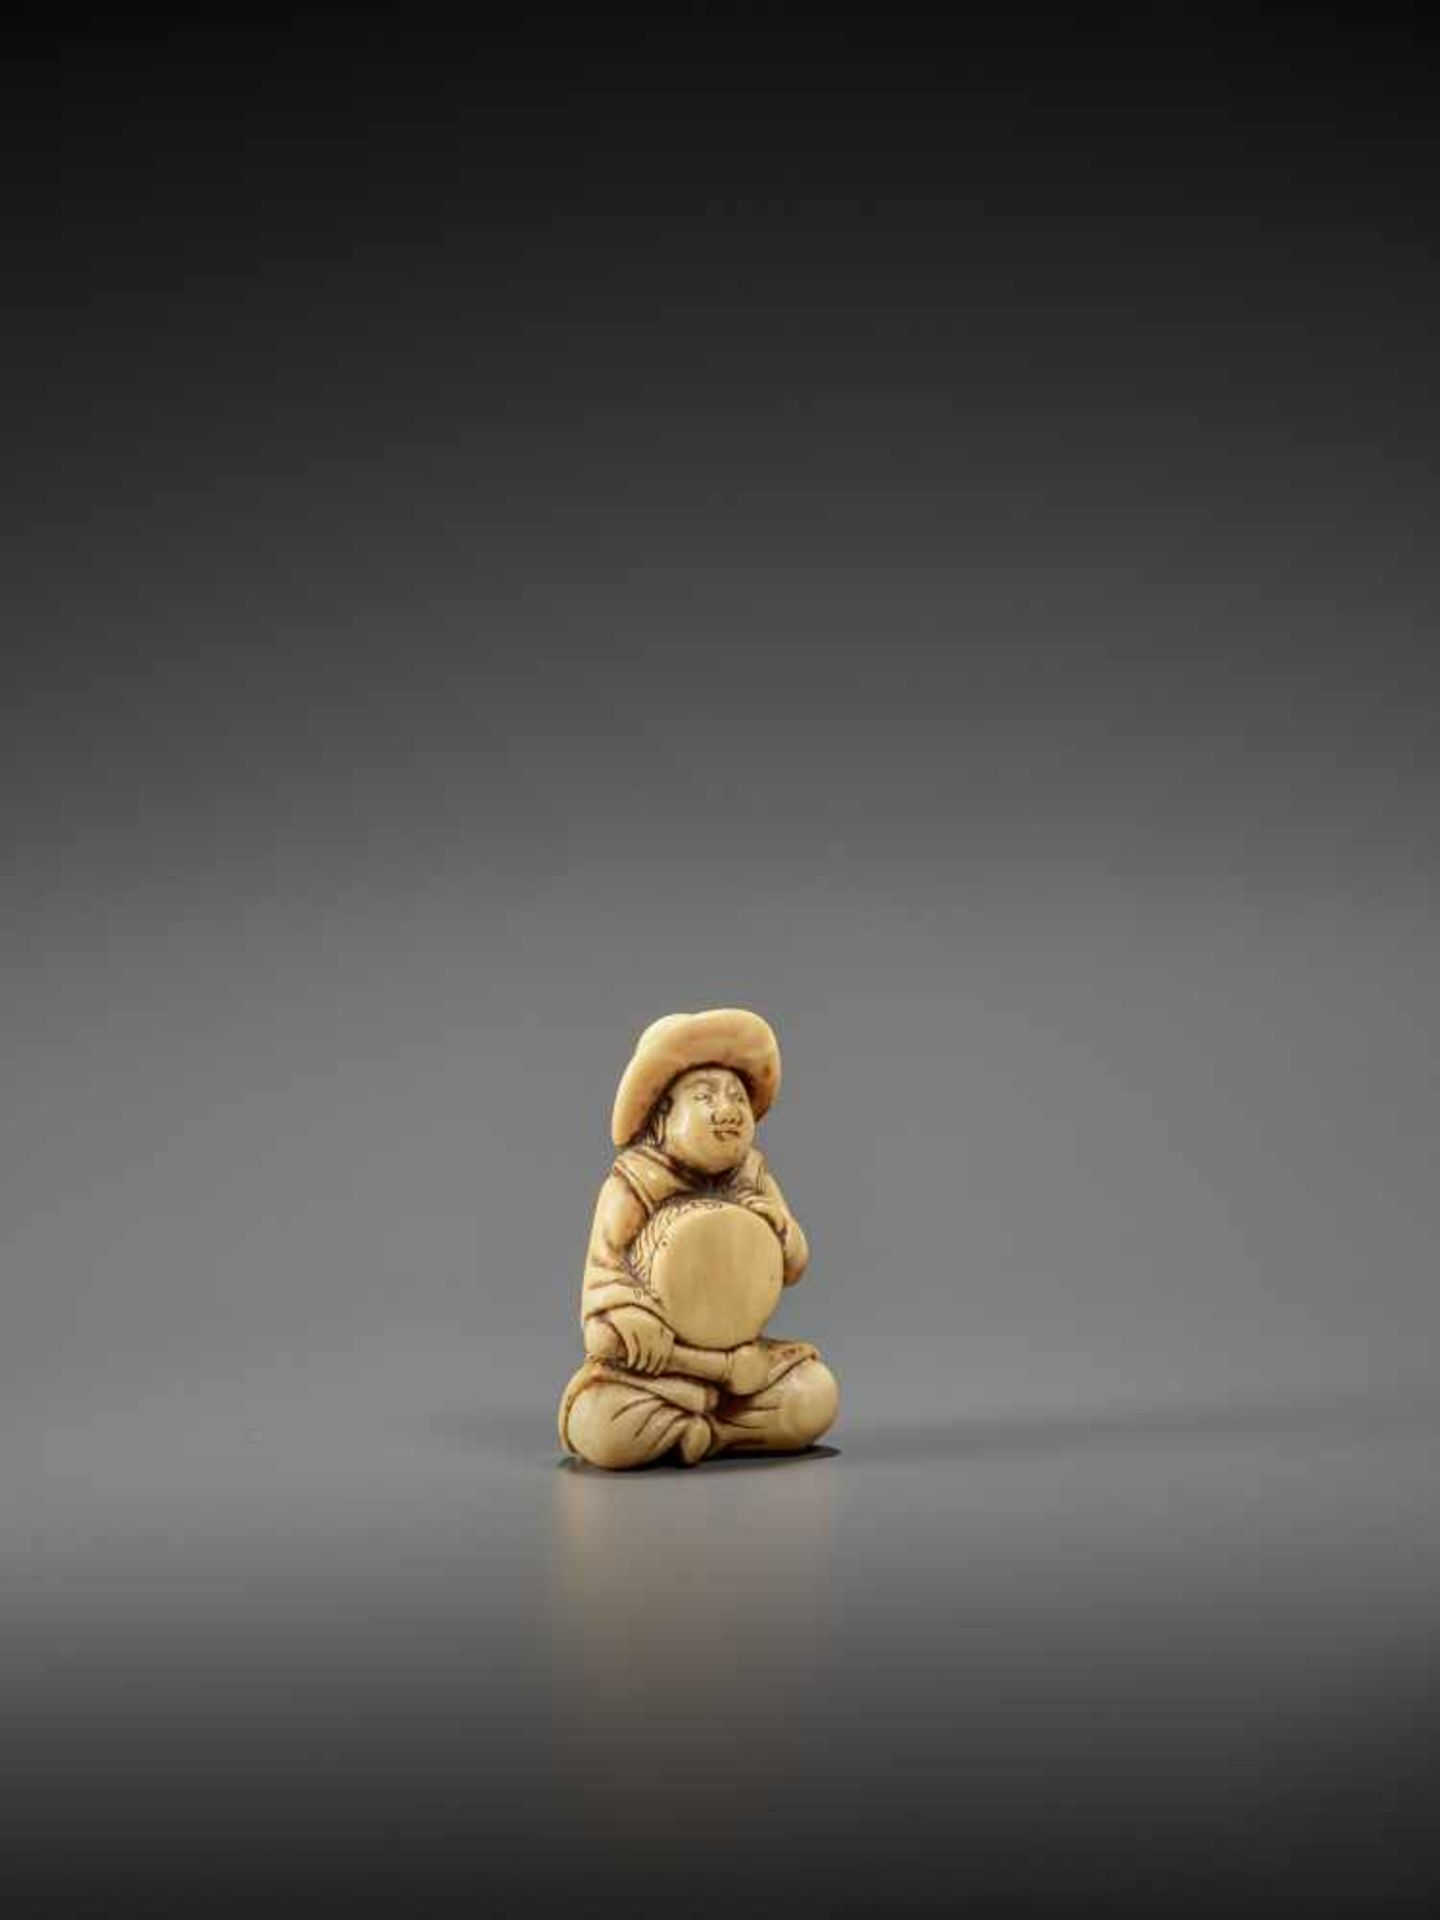 AN IVORY NETSUKE OF A DUTCHMAN WITH DRUM UnsignedJapan, late 18th century, Edo period (1615-1868) - Image 6 of 7